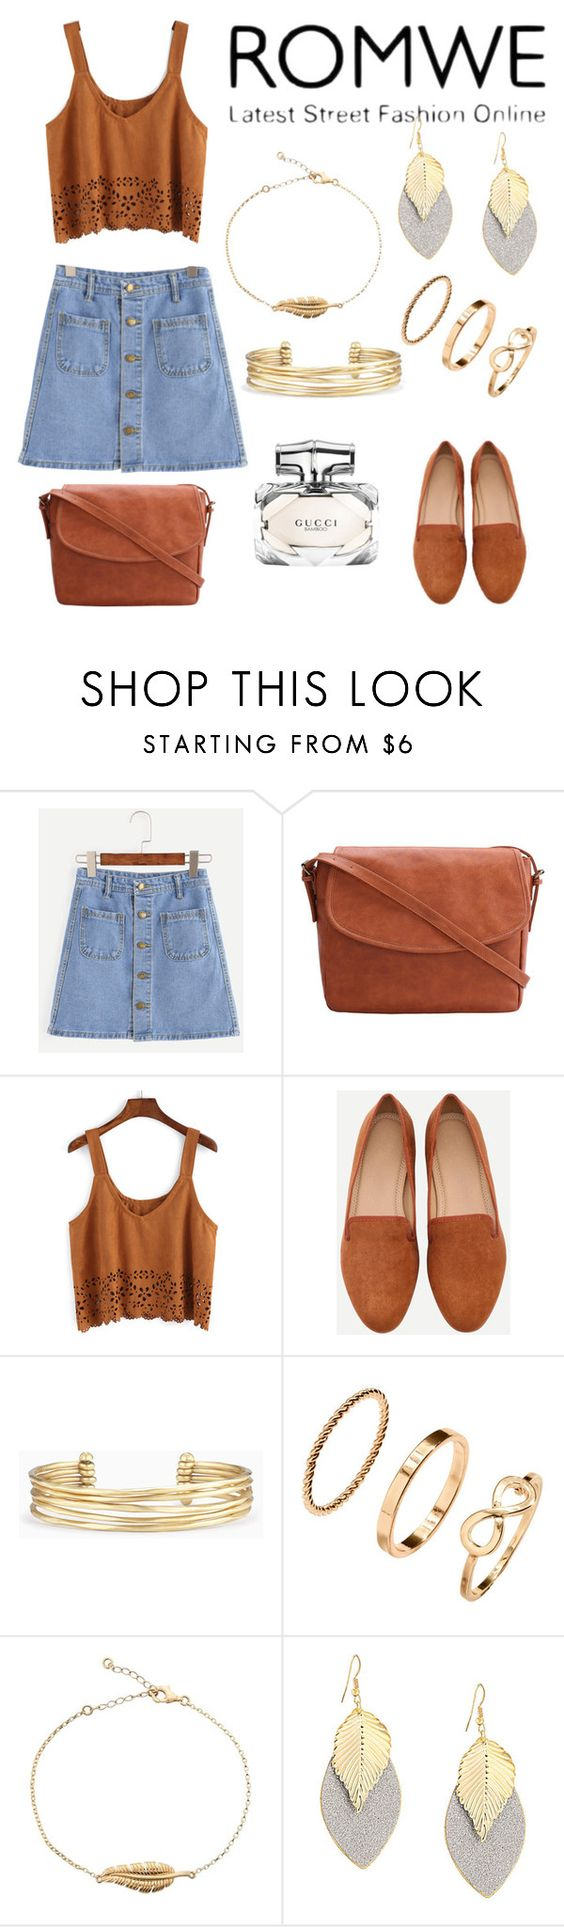 """romwe"" by mentalterrorist ❤ liked on Polyvore featuring Stella & Dot and Gucci"